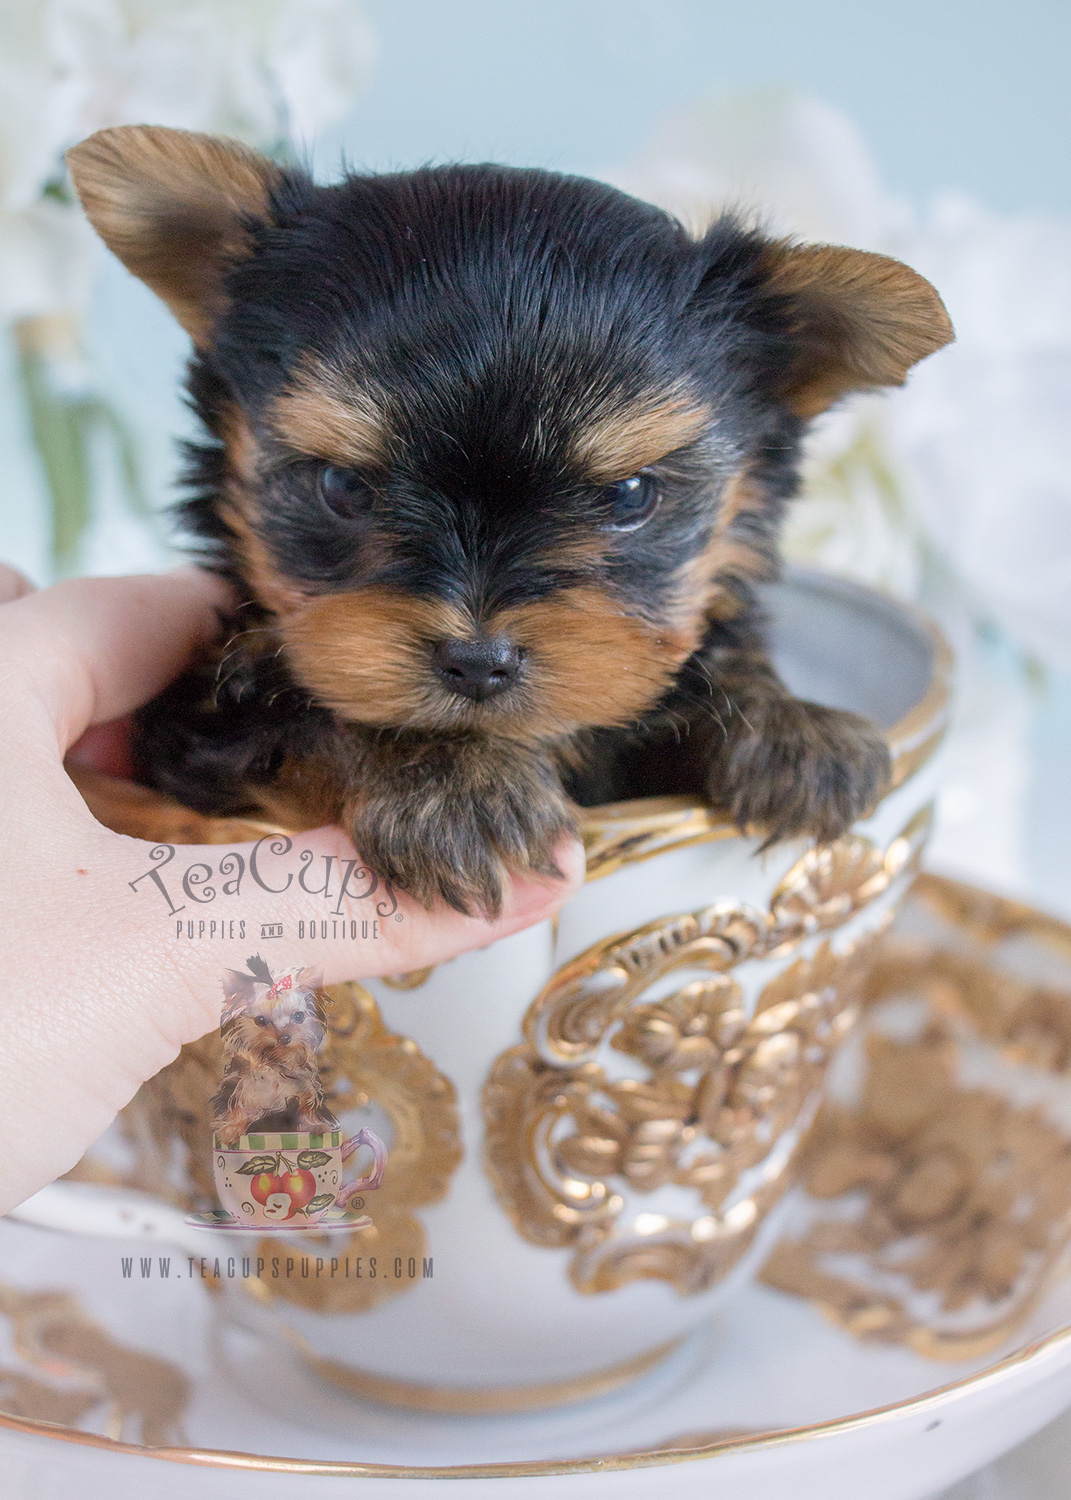 For Sale Tiny Teacup Yorkie